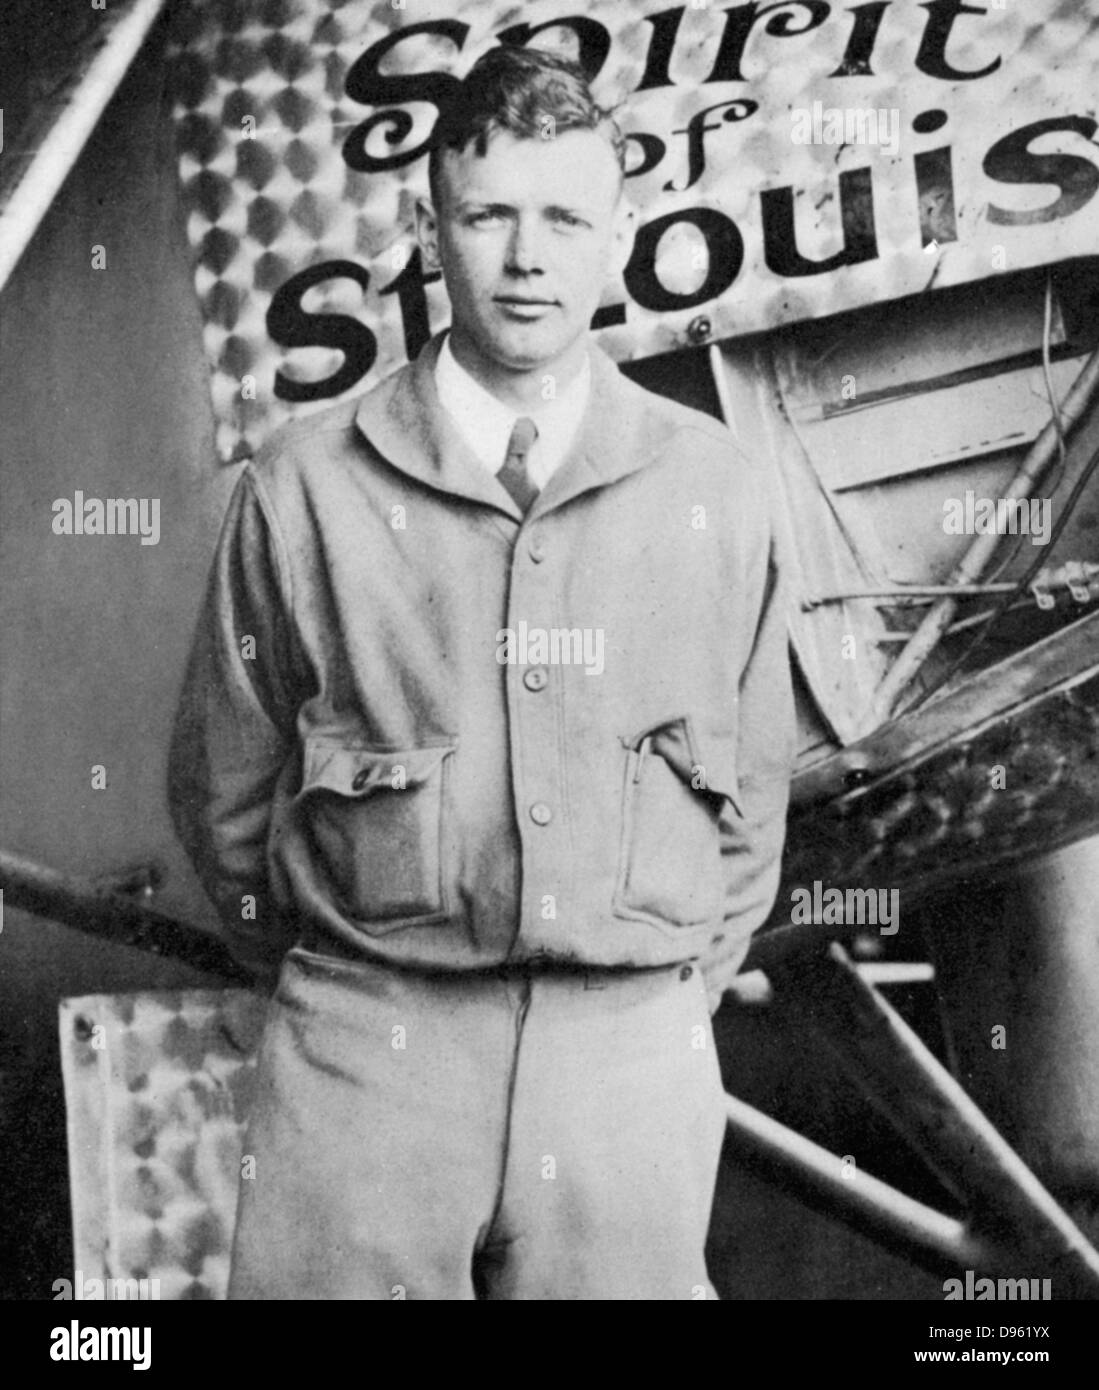 Charles Lindbergh (1902-1974) in his flying kit standing by 'Spirit of St Louis', the plane in which he - Stock Image